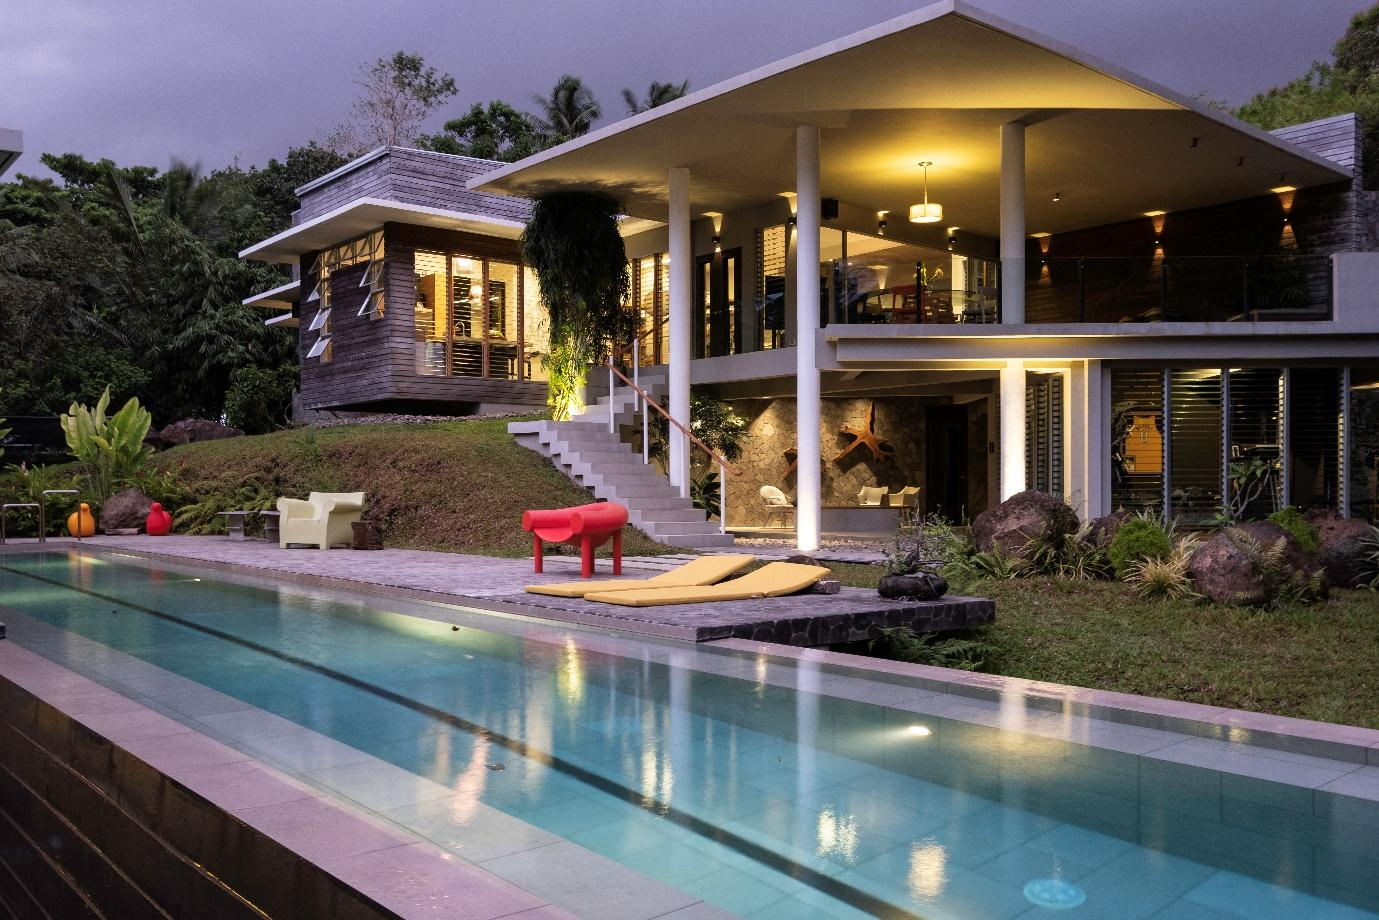 A picture containing building, outdoor, house, resort  Description automatically generated